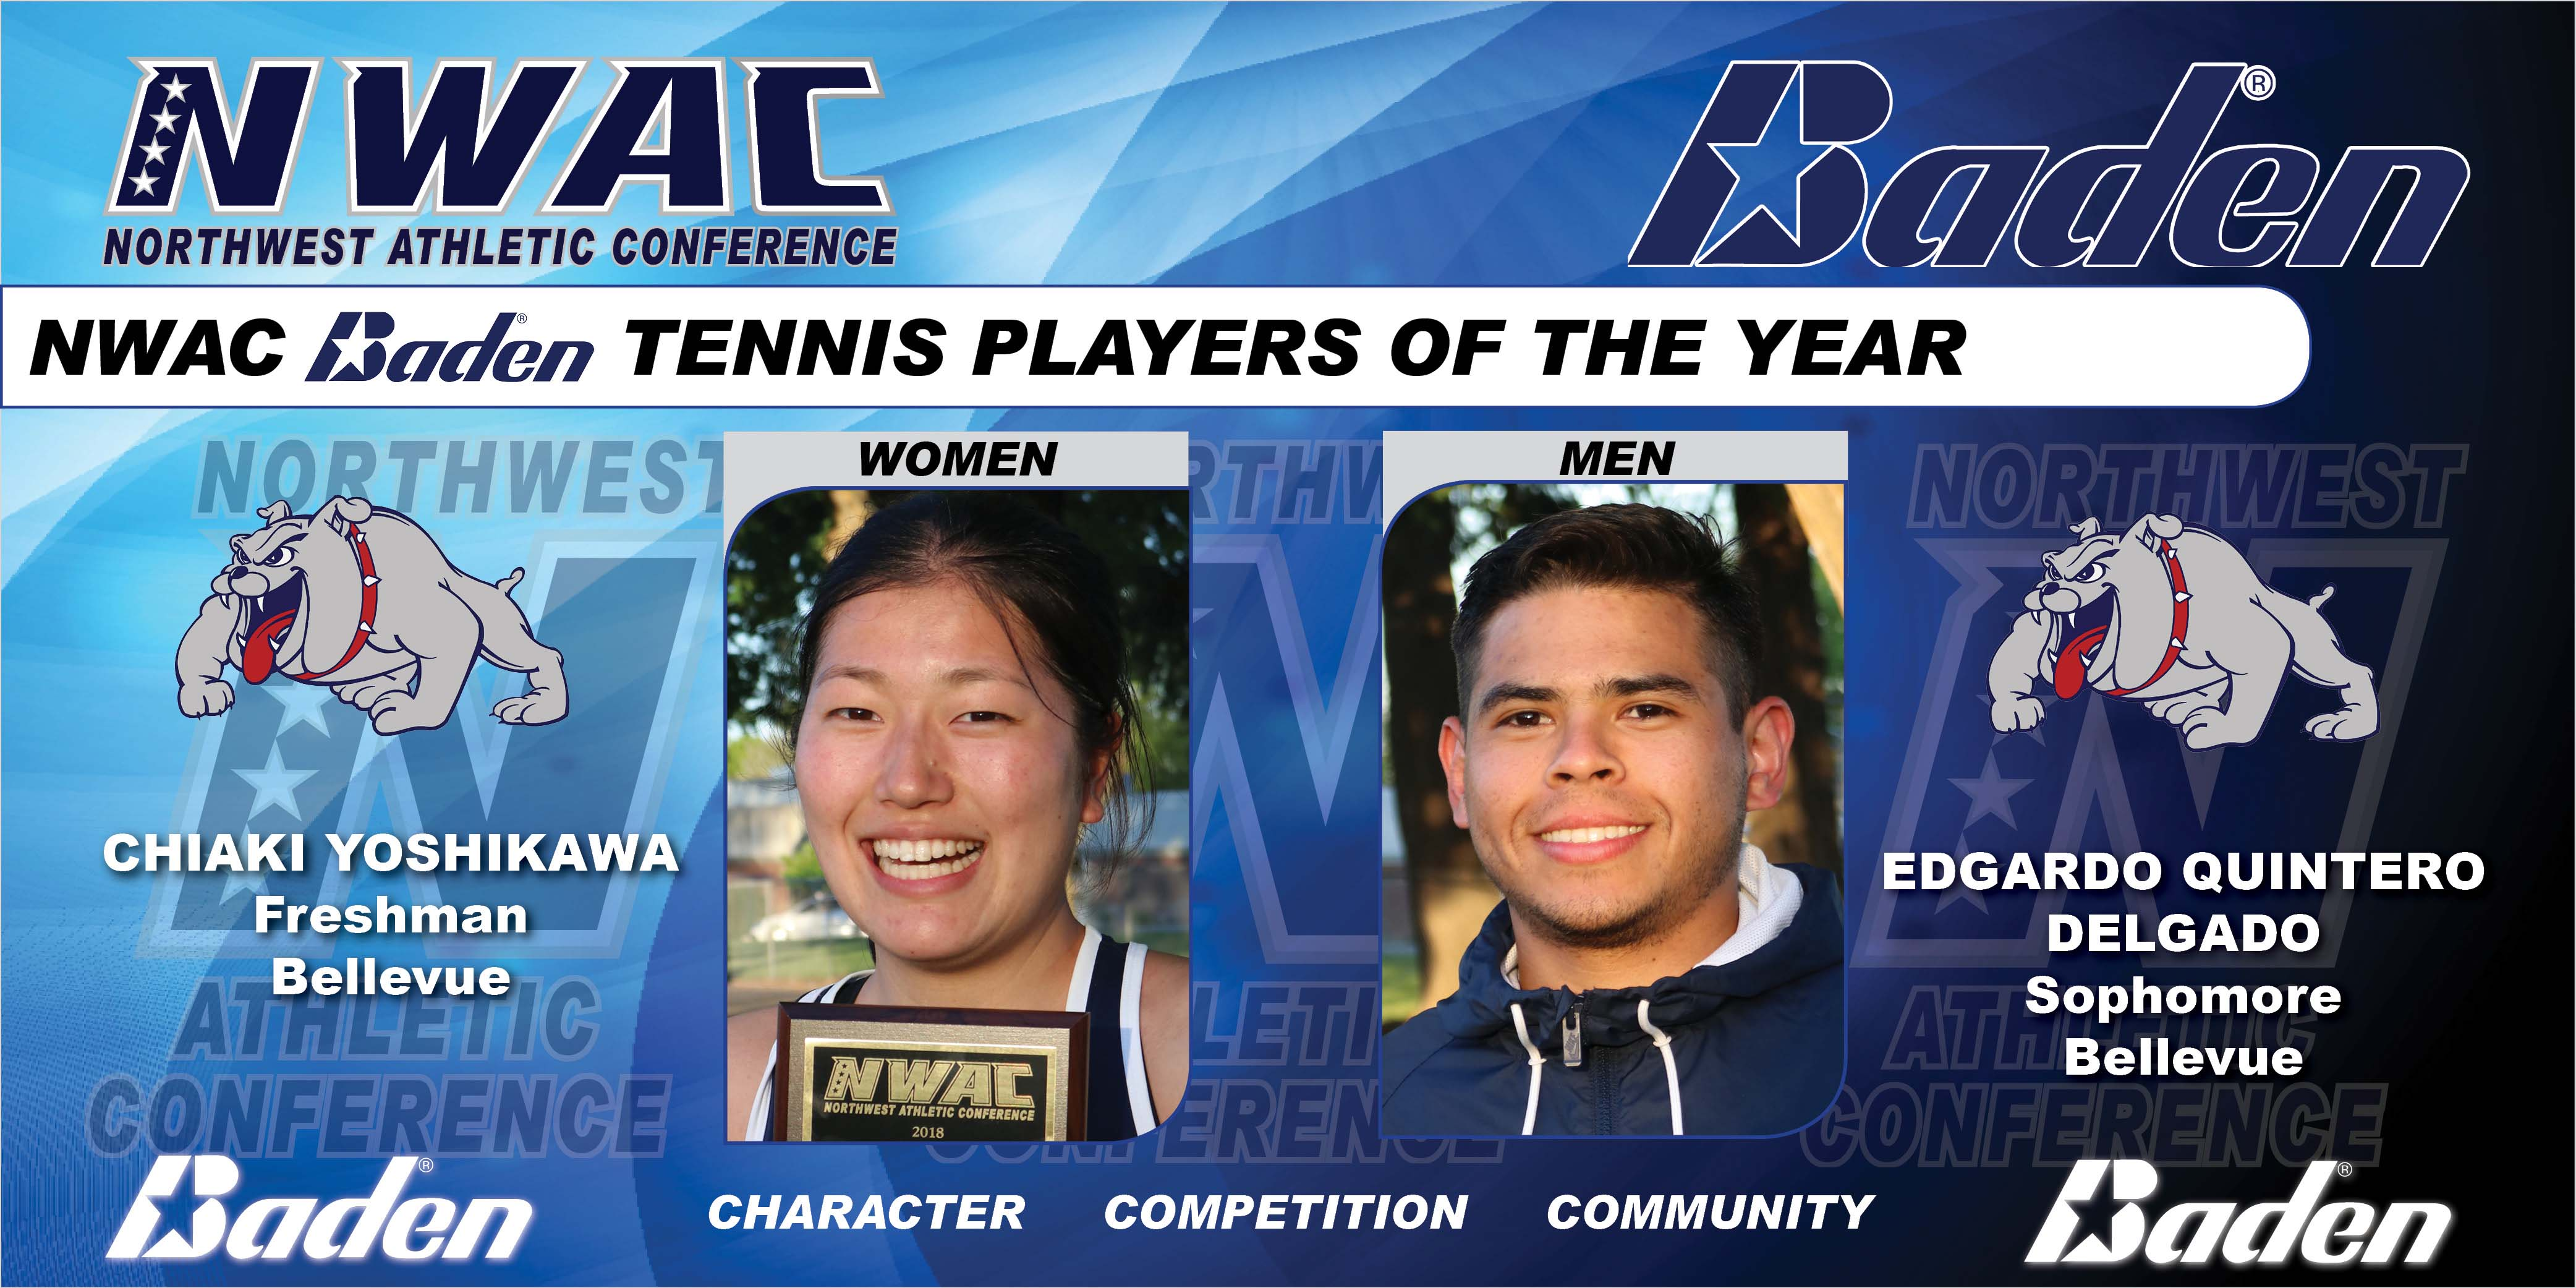 Baden Tennis Player's of the Year image